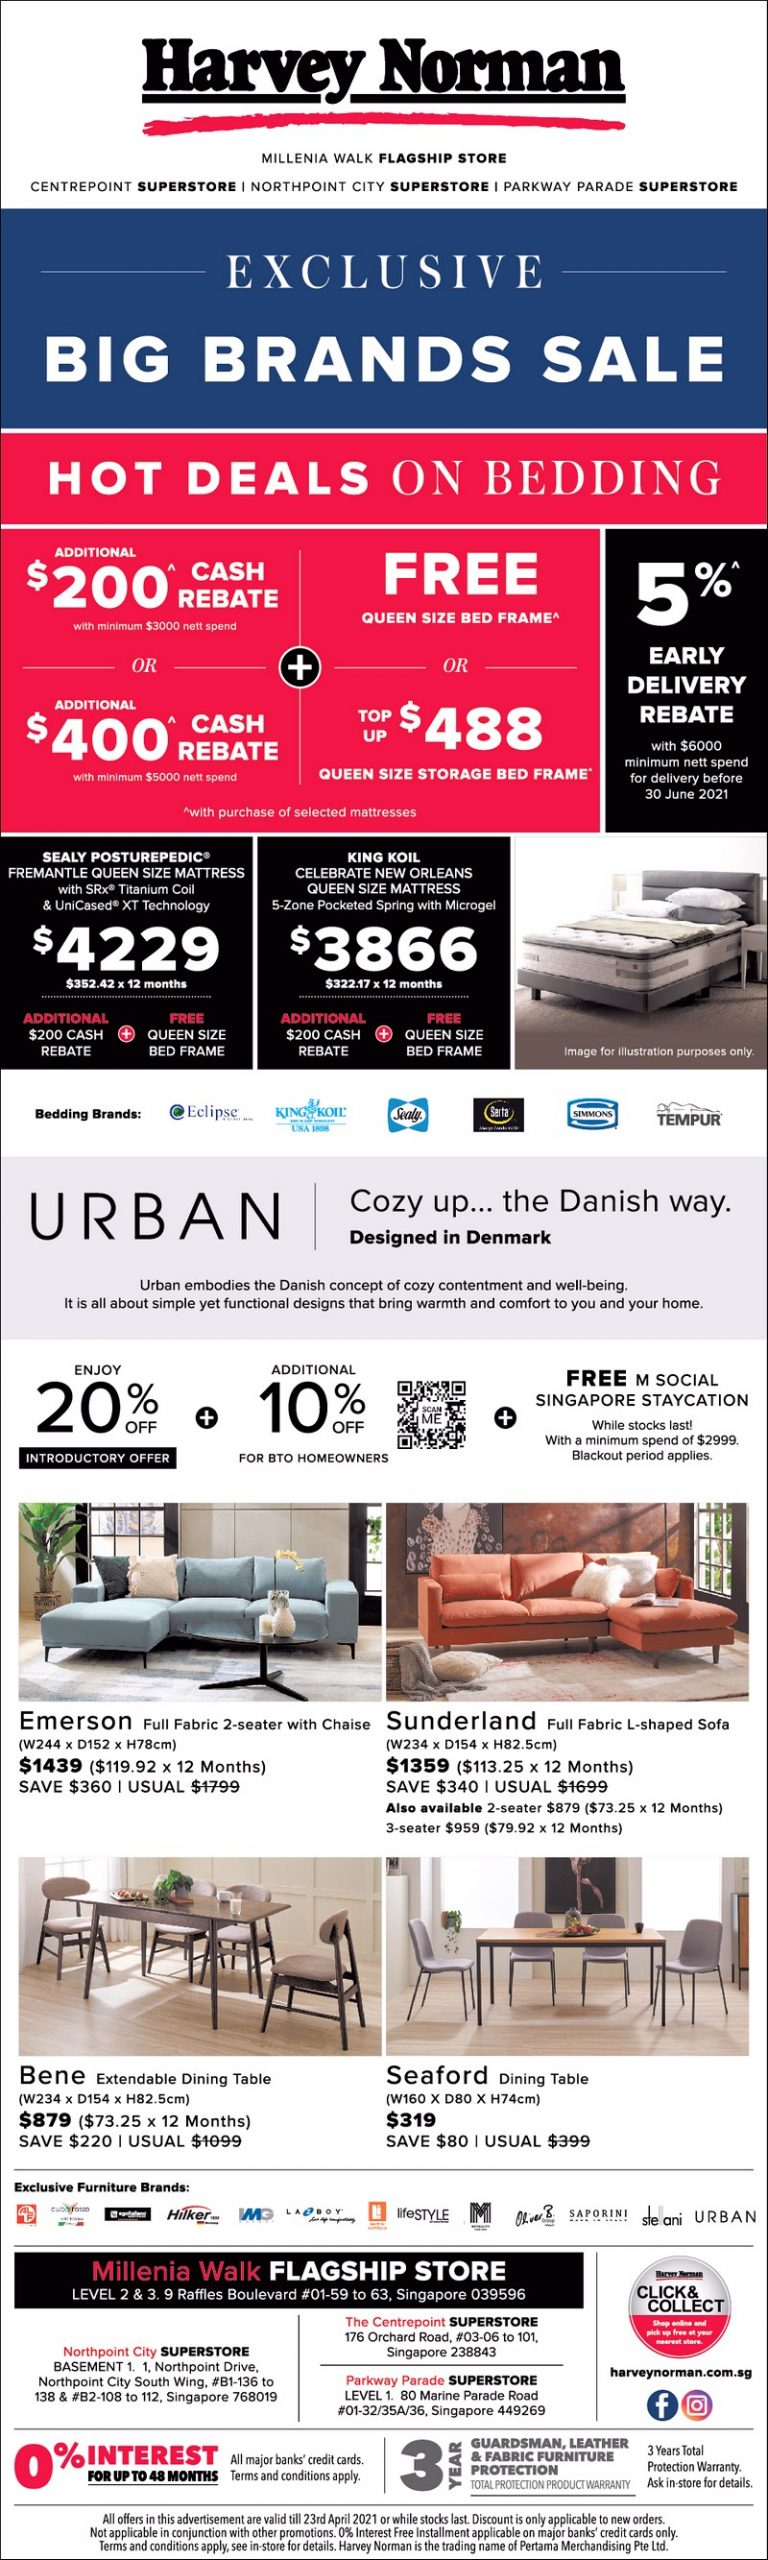 Furniture-Bedding_16-April-2021-scaled 19-23 Apr 2021: Harvey Norman Exclusive Bid Brand Sale! Up to 65% OFF!